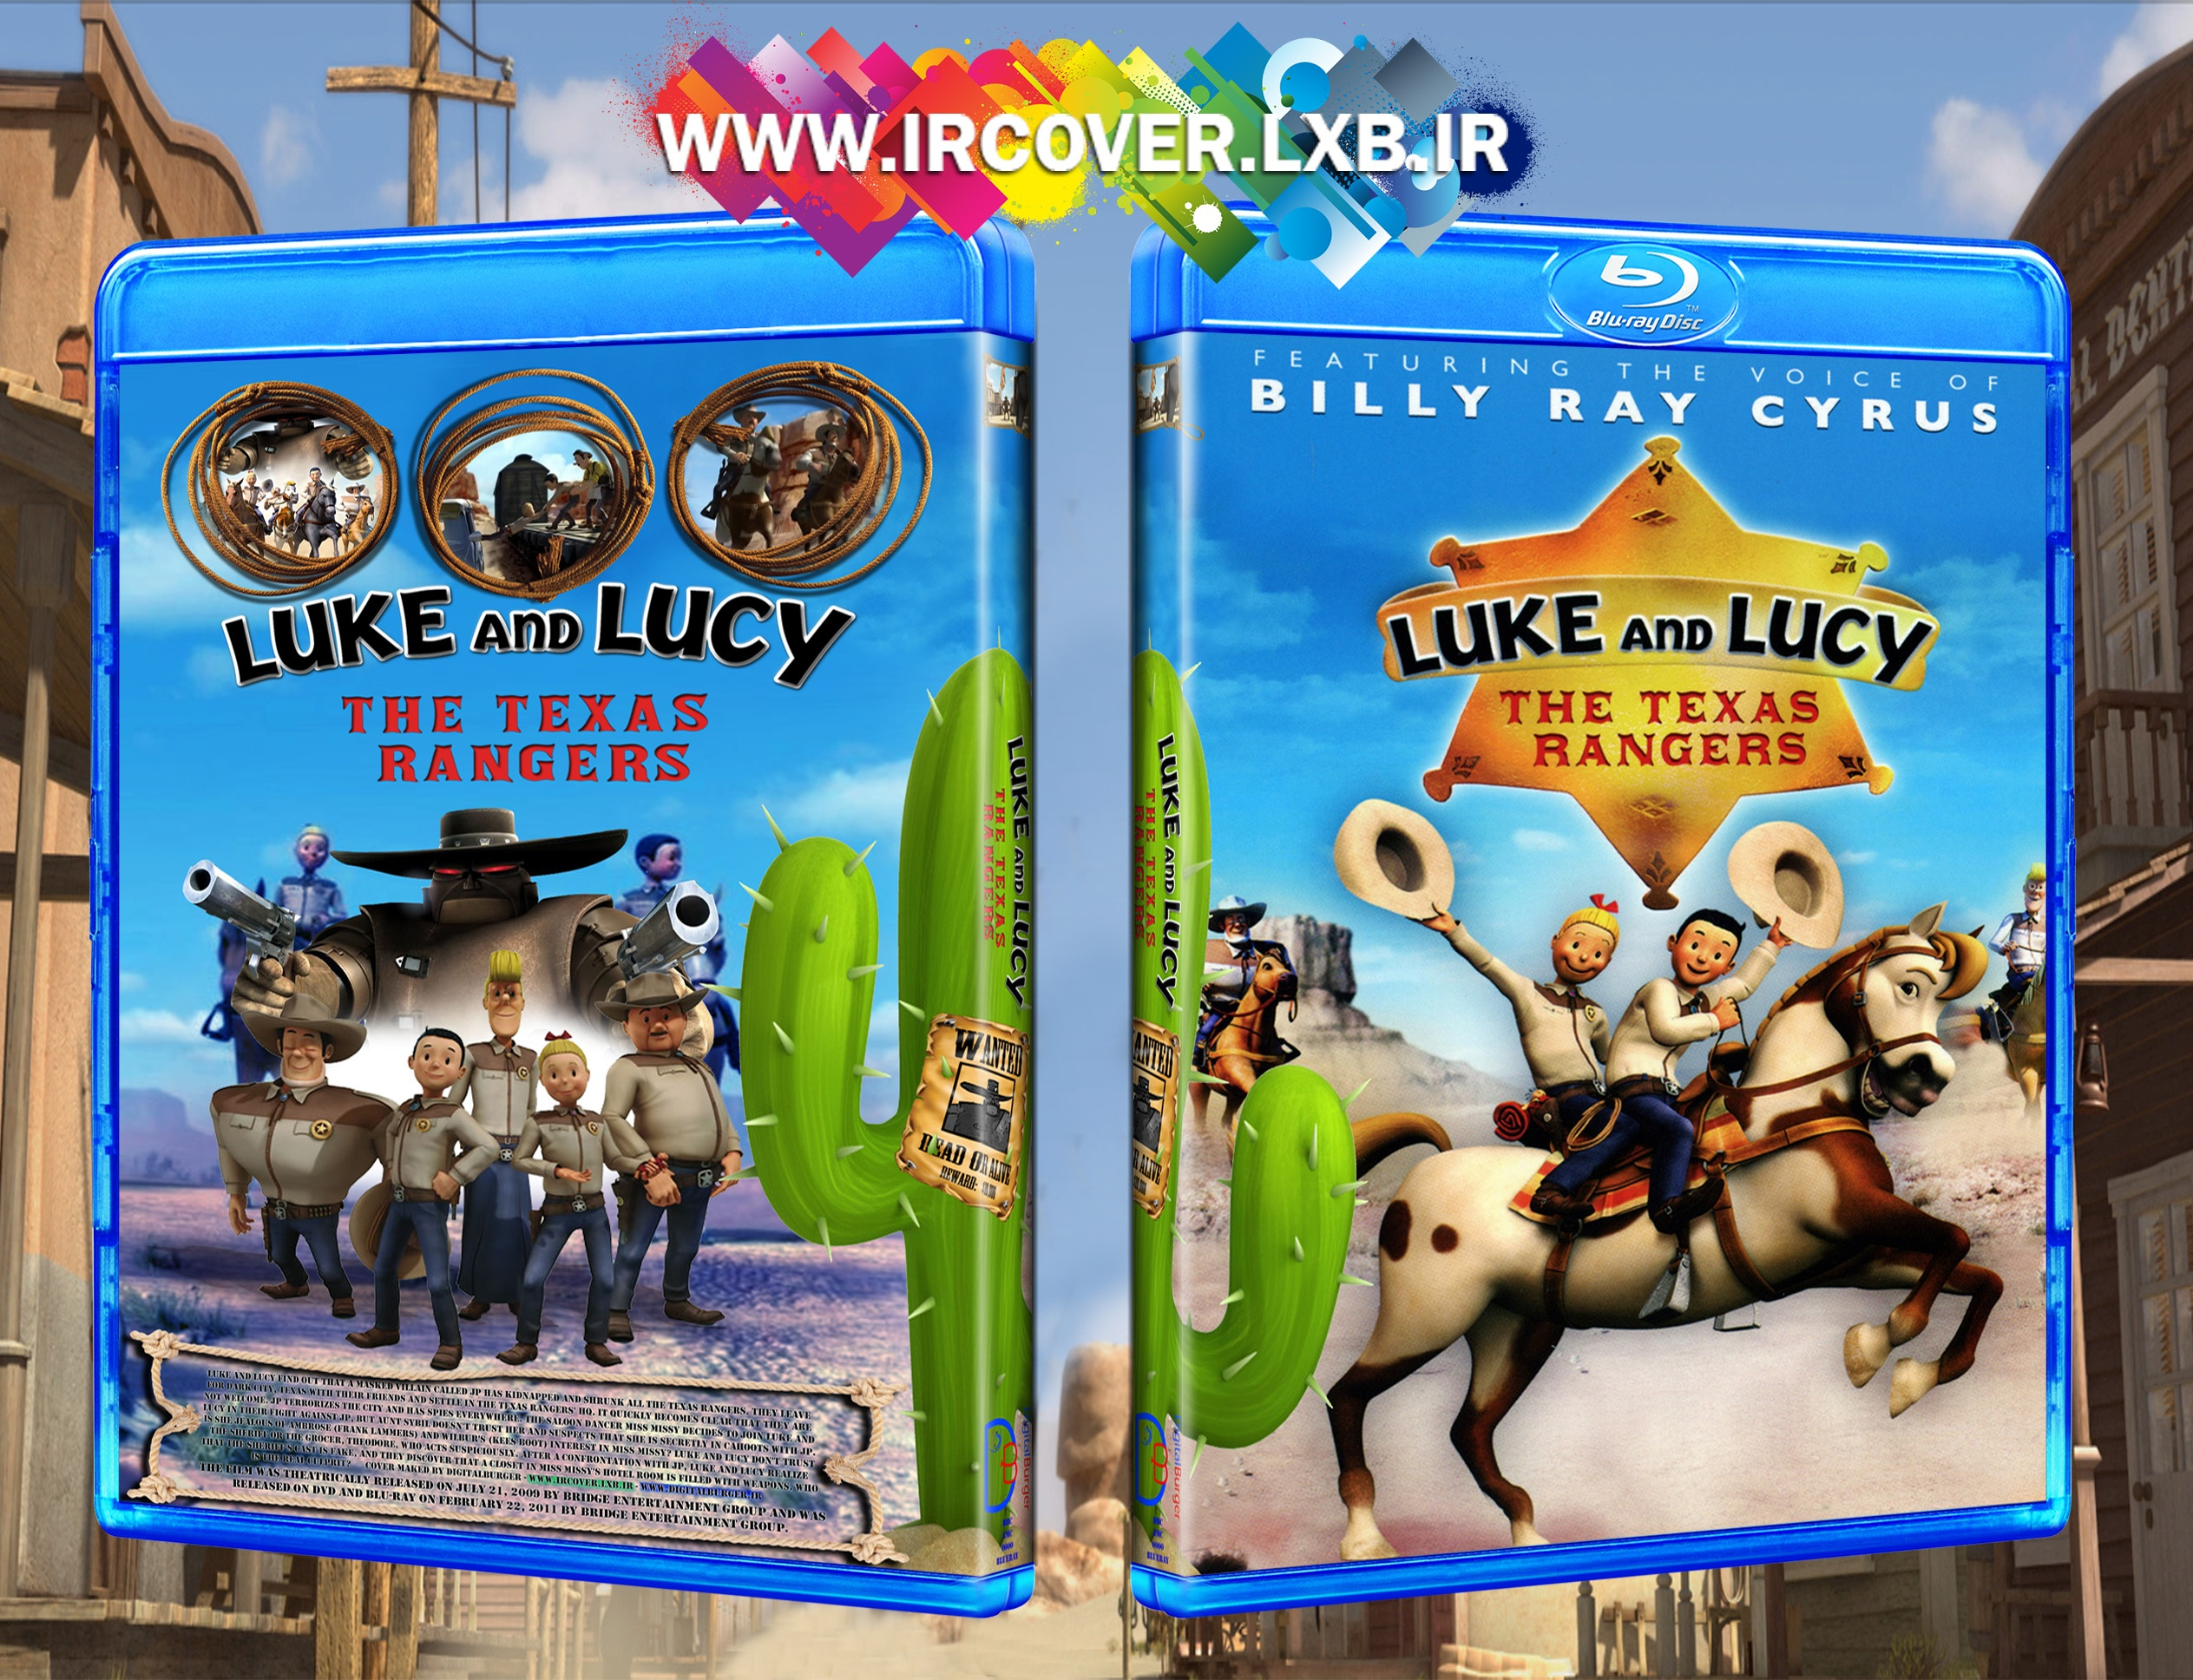 Luke and Lucy The Texas Rangers box cover